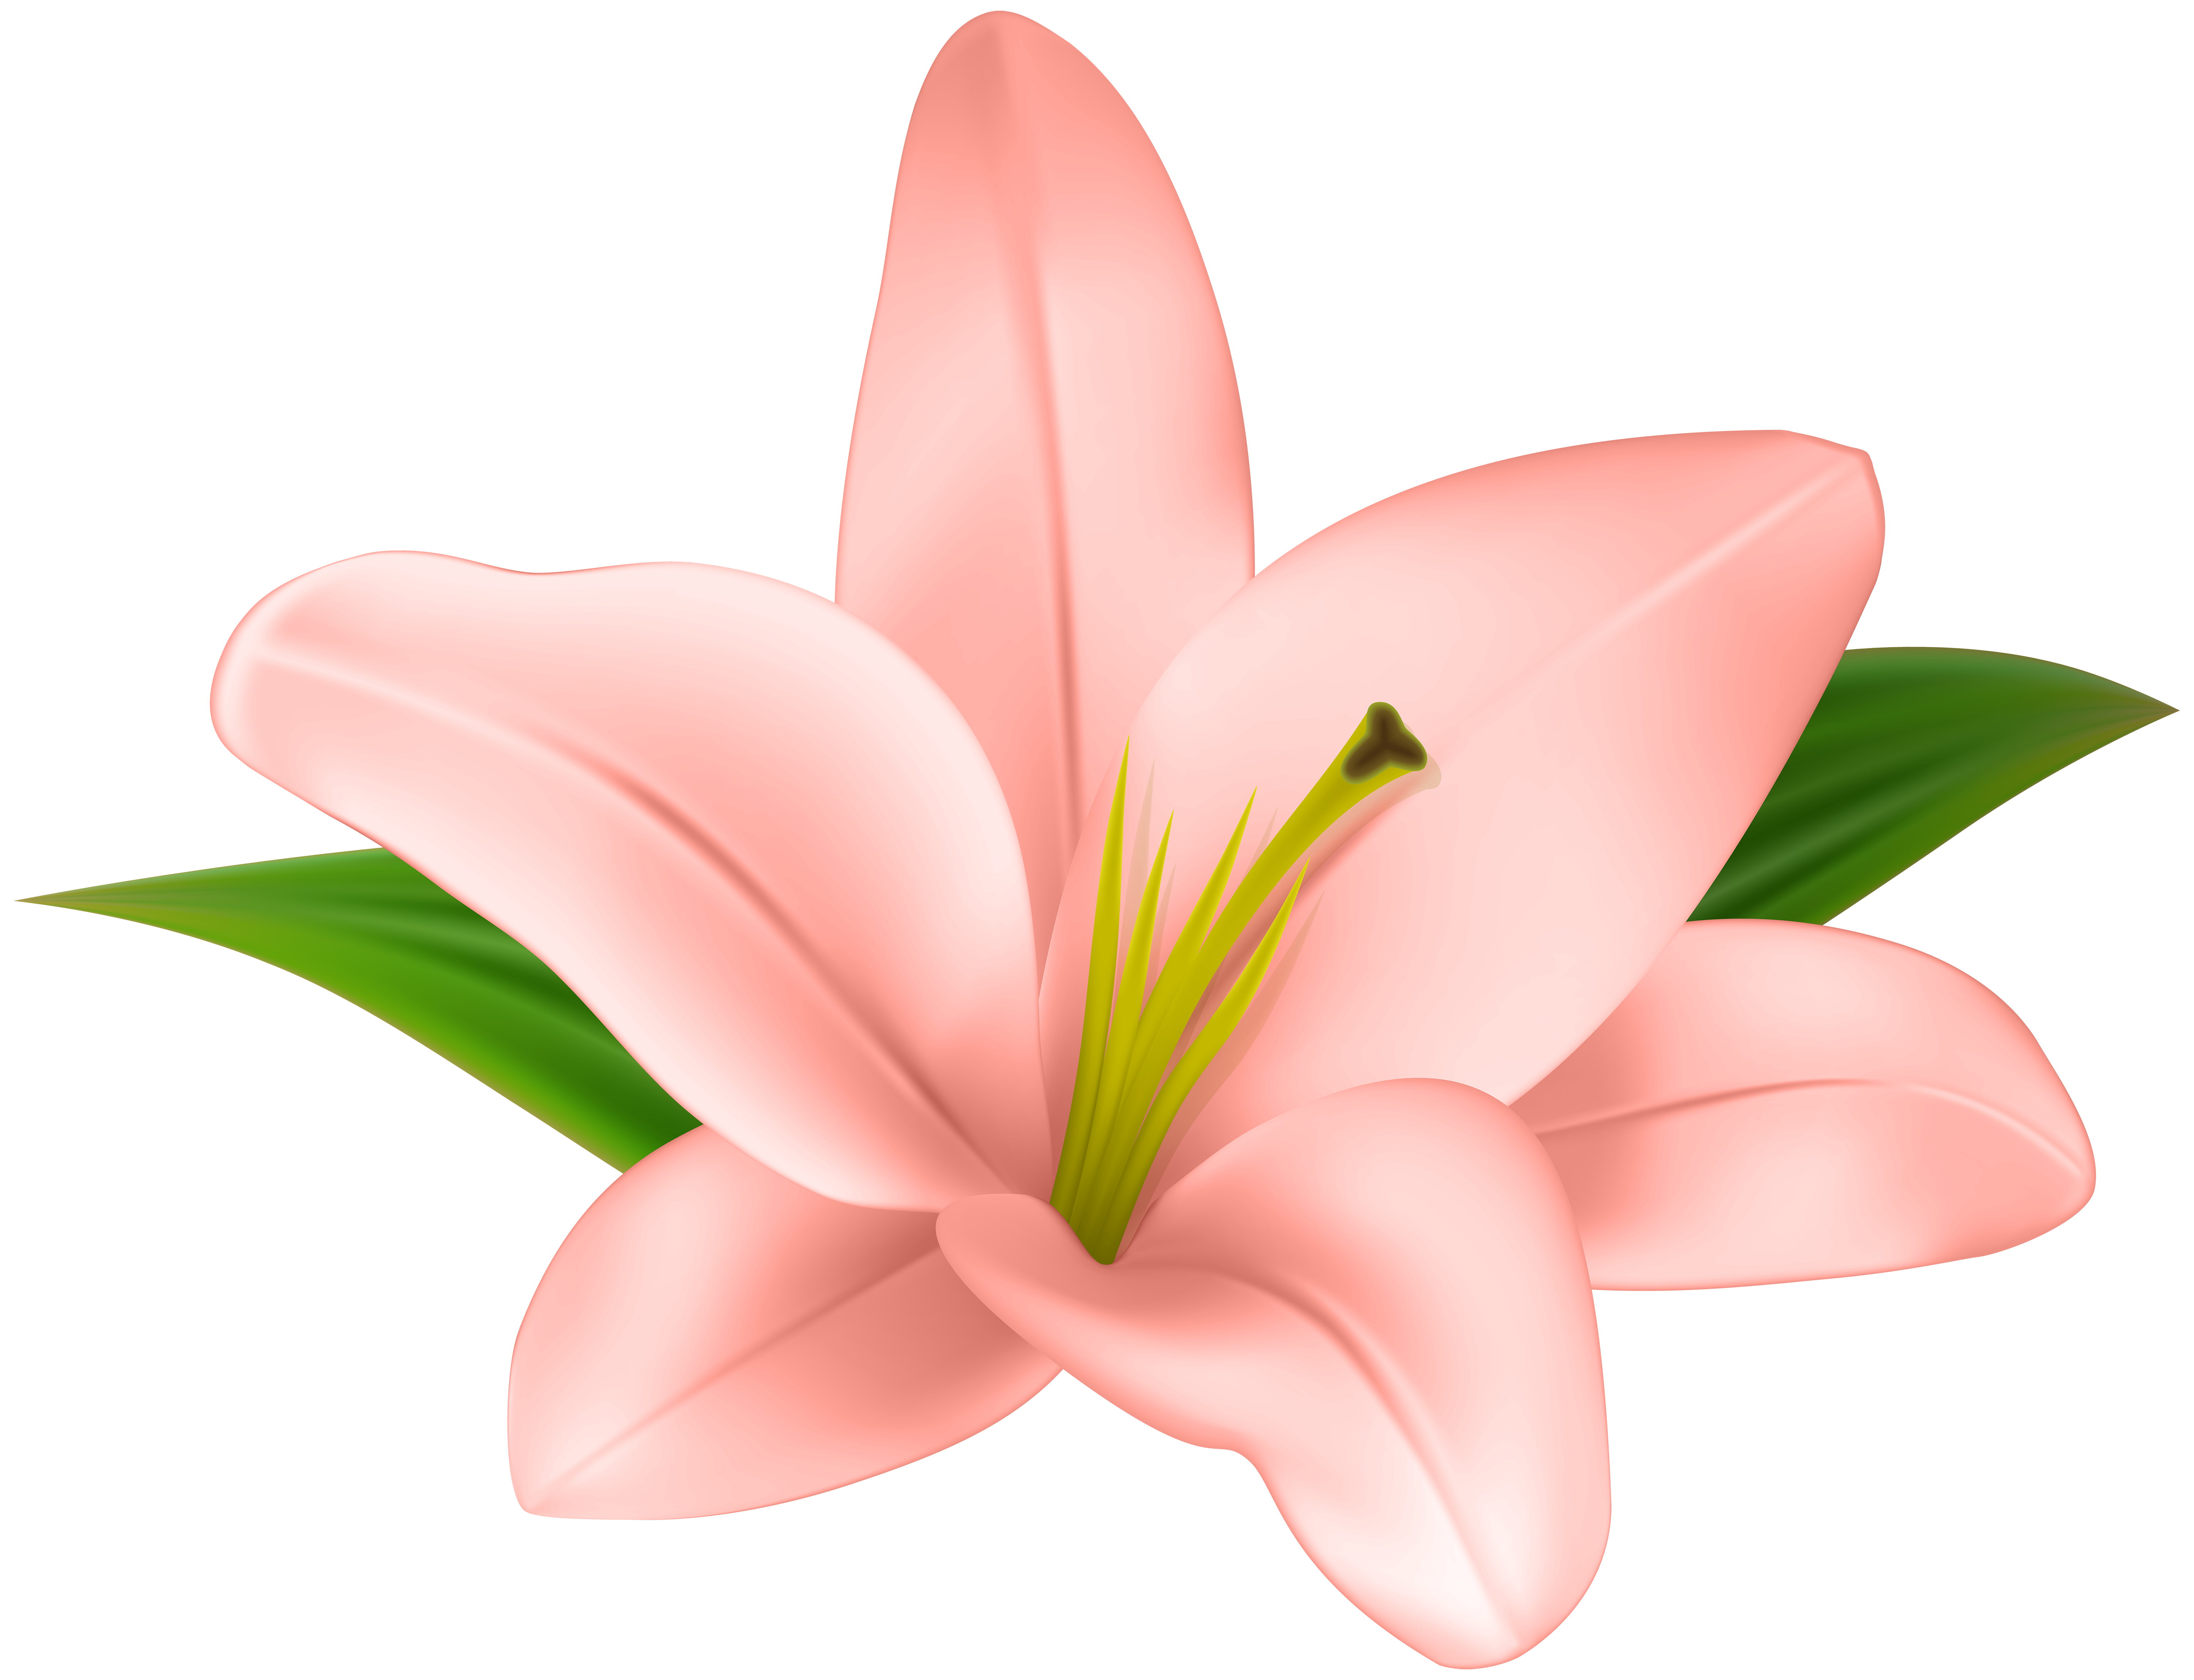 Lily flower clipart picture transparent Lily Flower Clipart at GetDrawings.com | Free for personal use Lily ... picture transparent